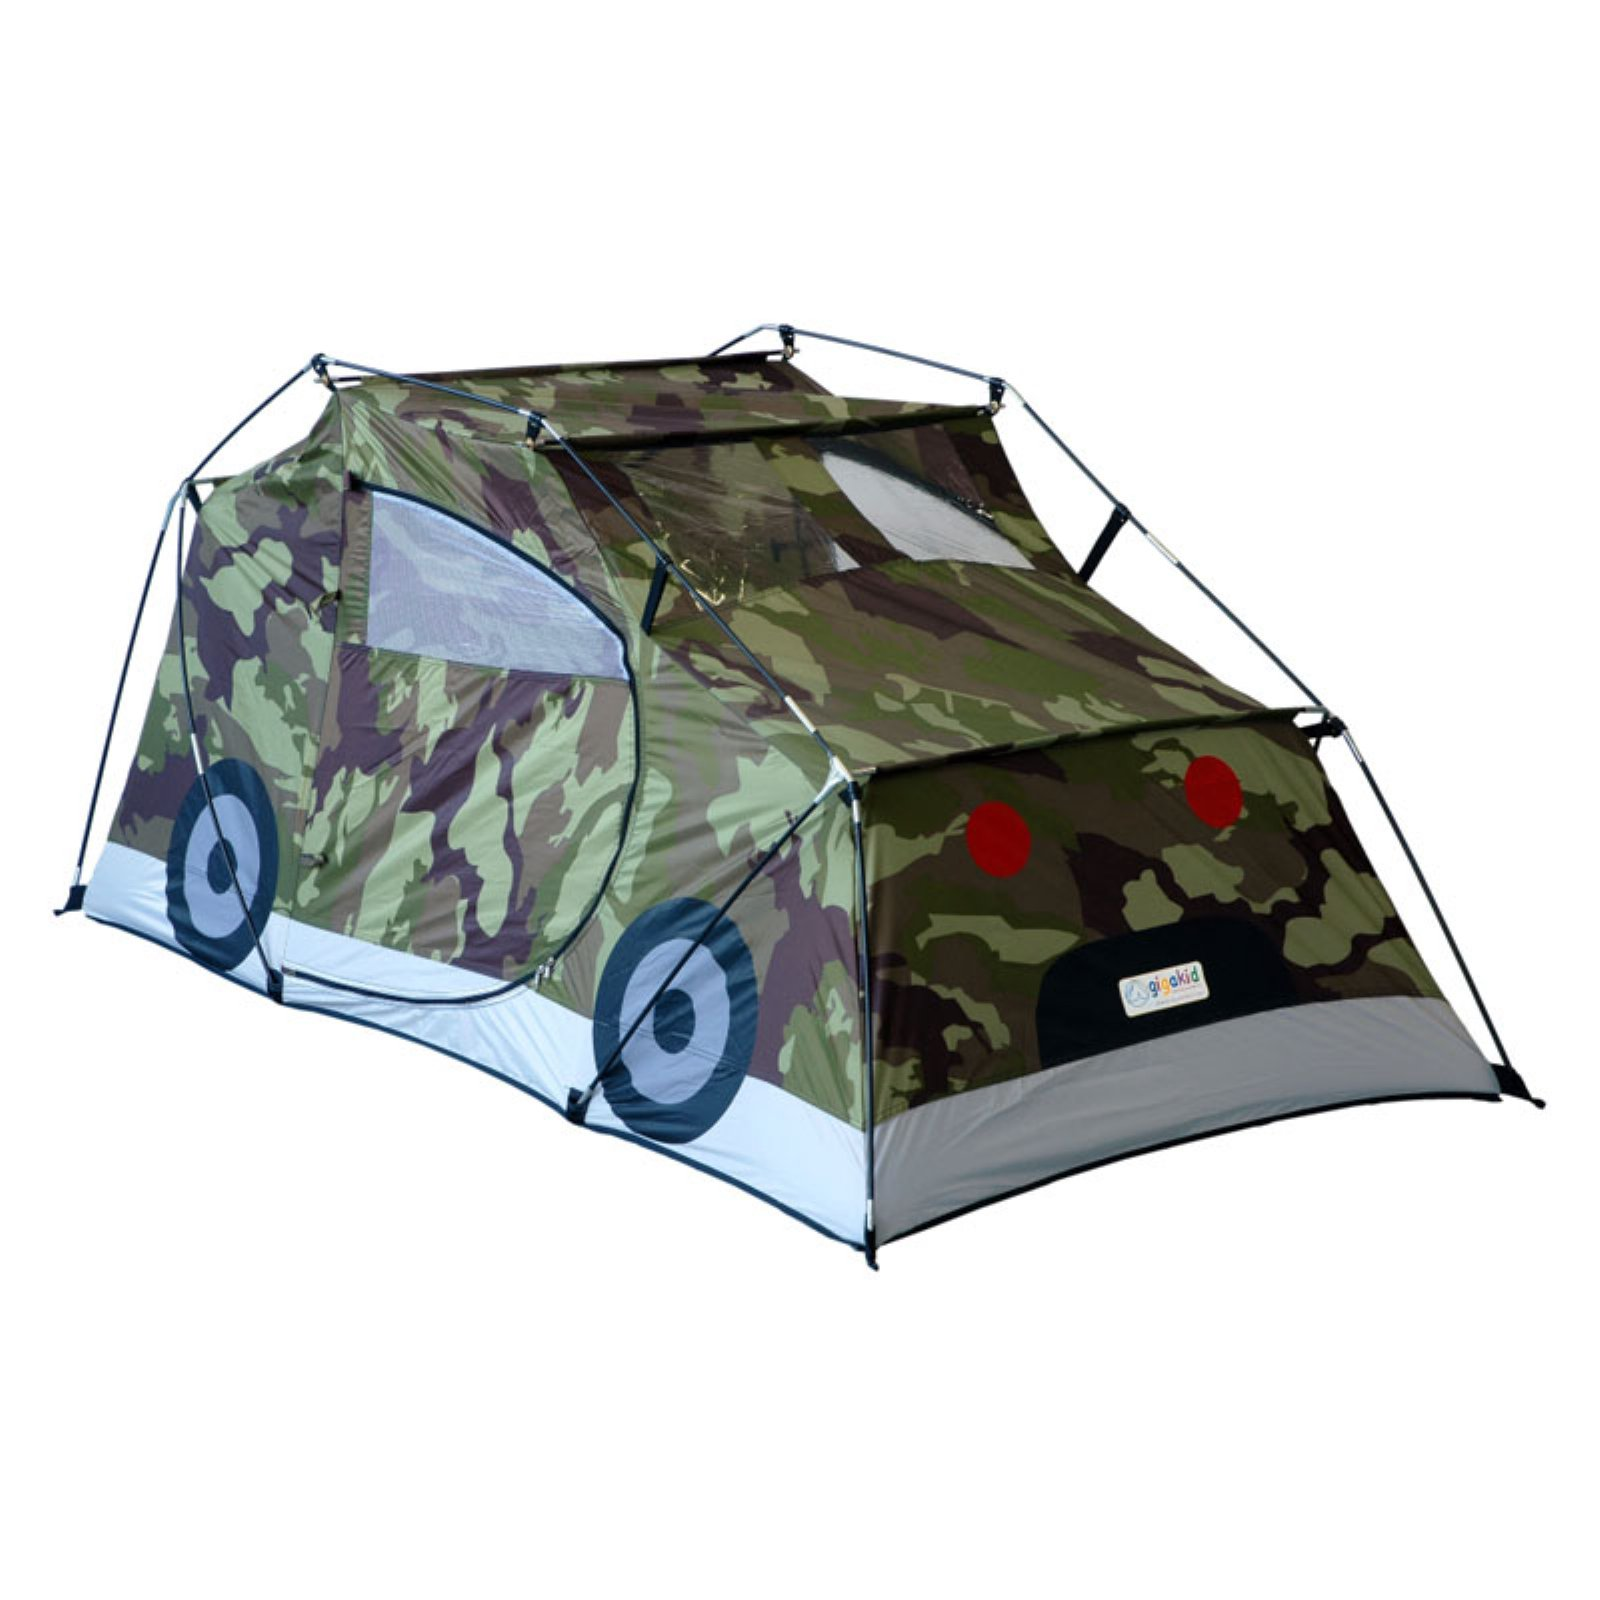 GigaTent MUV Play Tent